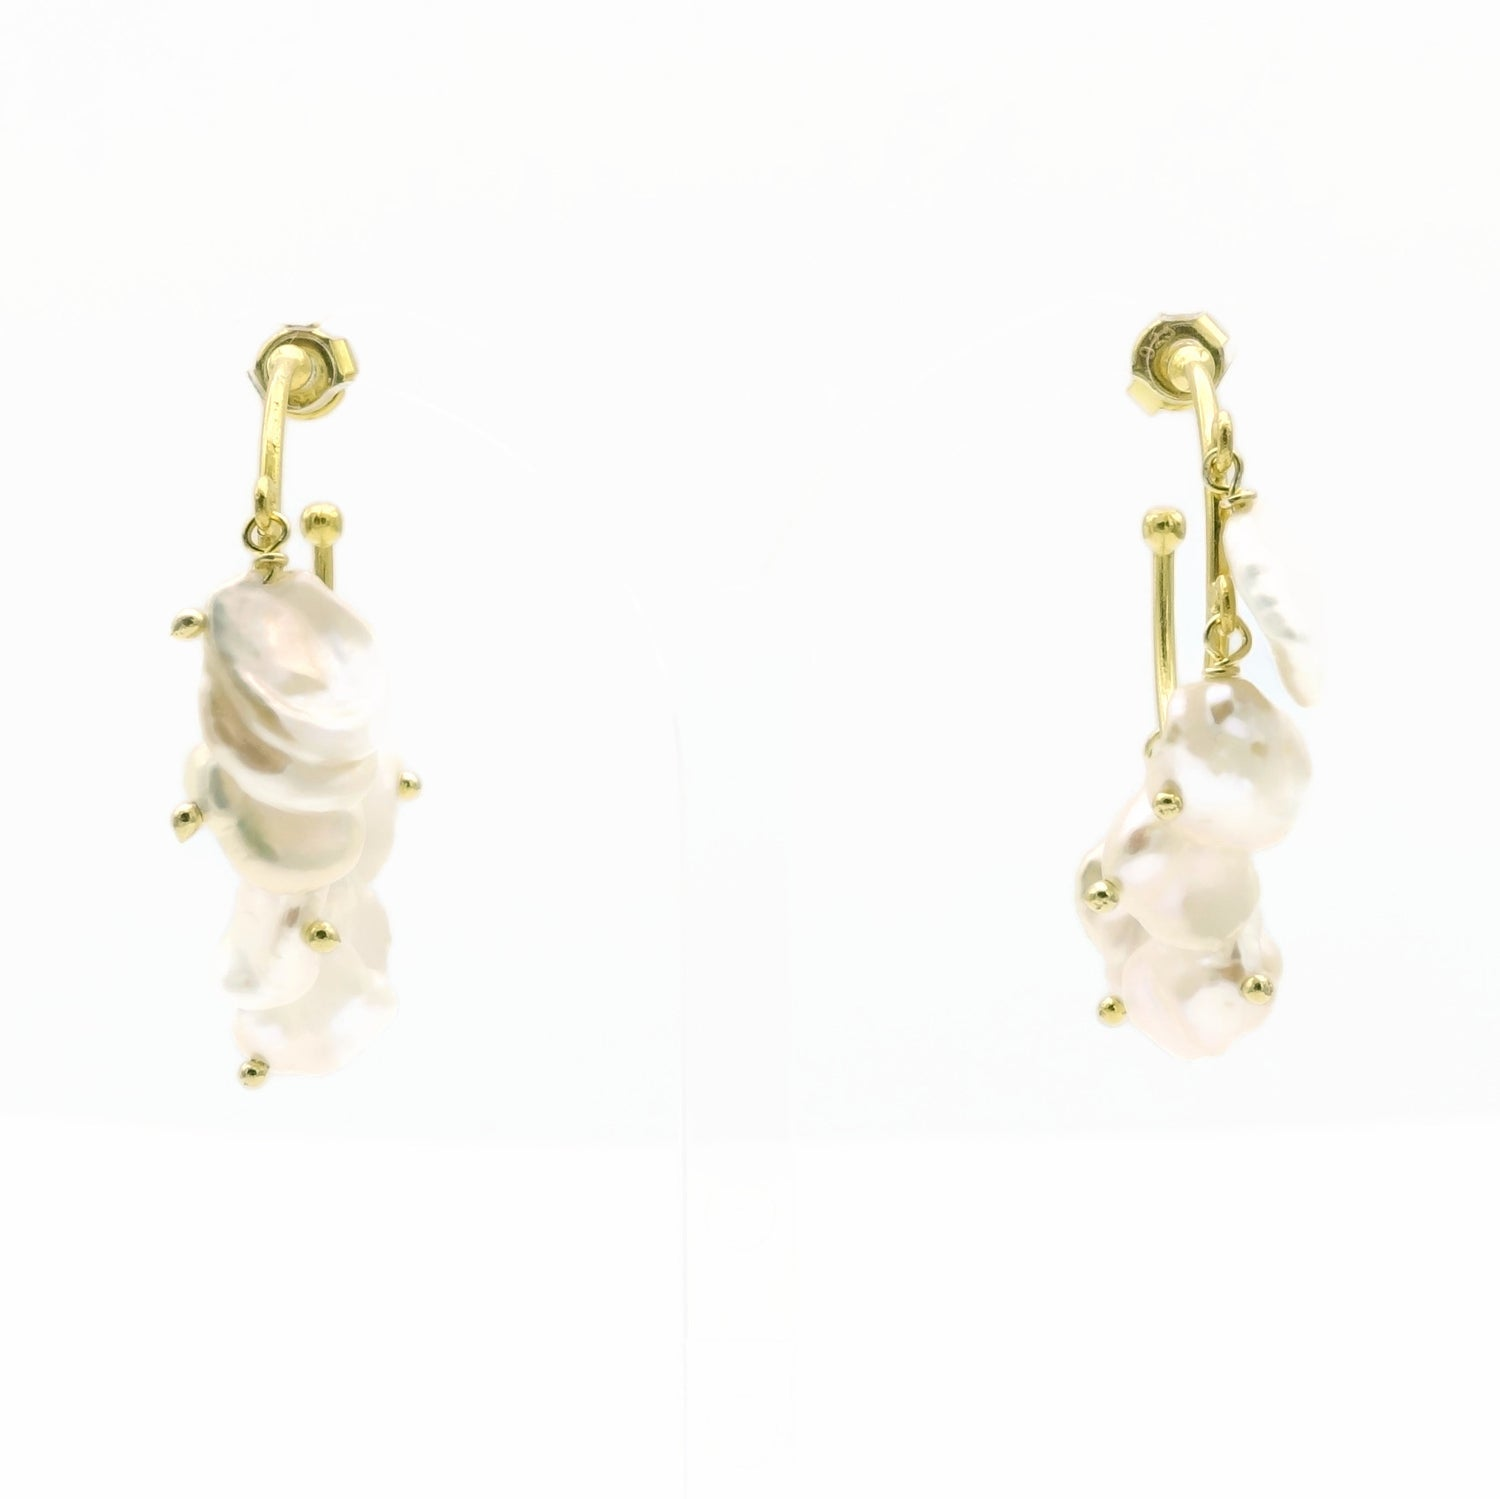 Aylas Pearl semi precious gemstone earrings - 21ct Gold plated 925 Silver handmade